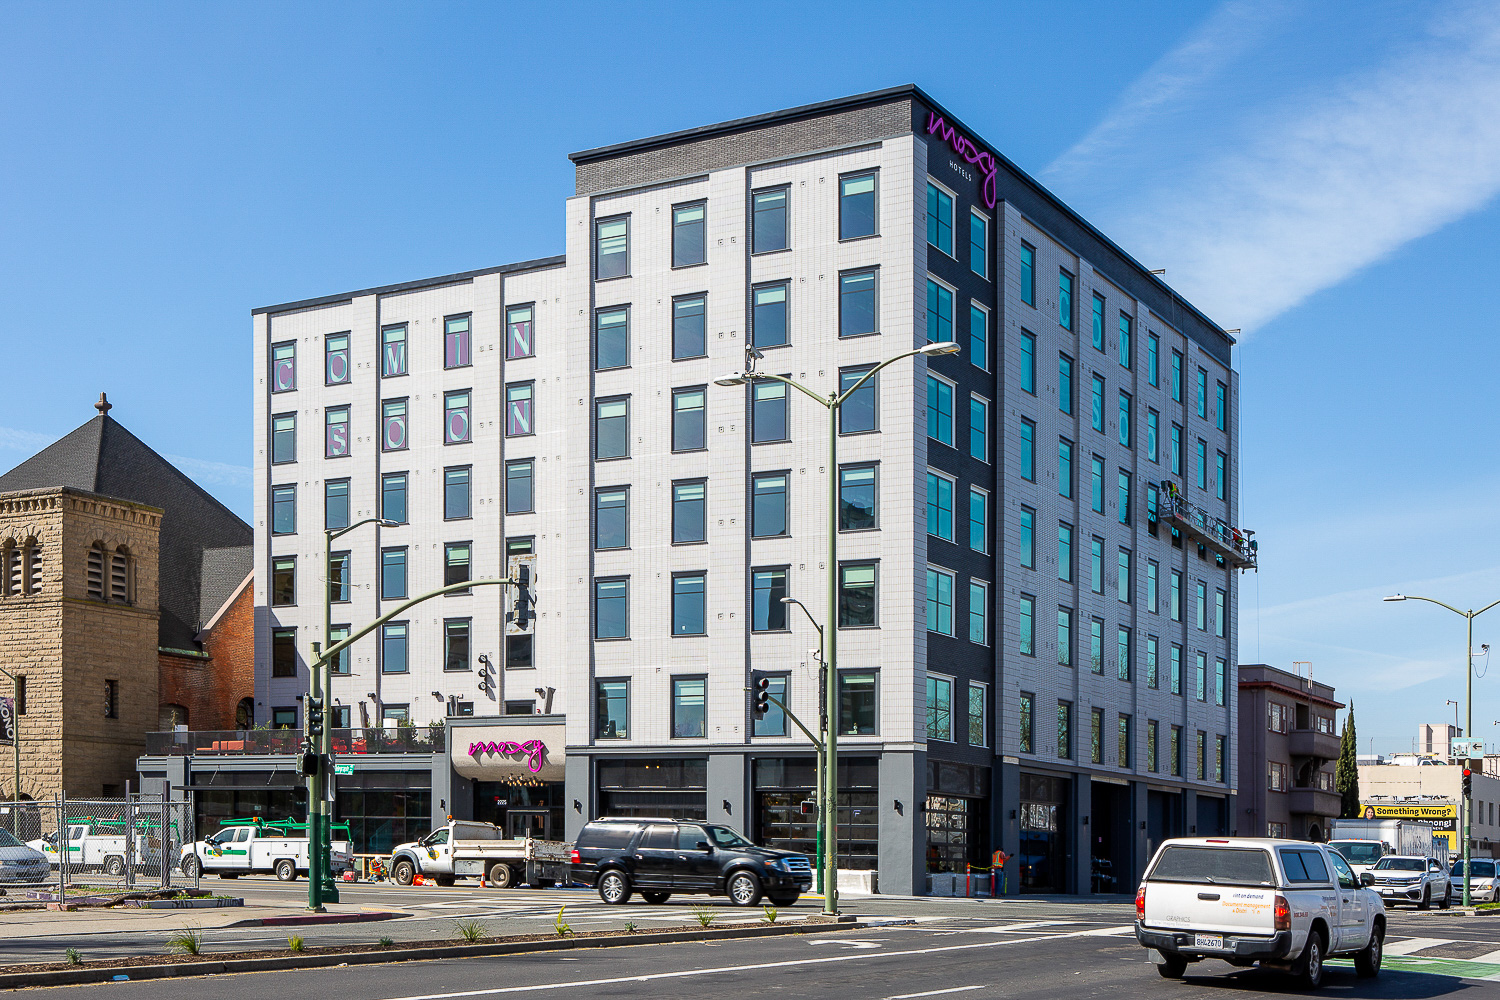 Moxy Hotel at 2225 Telegraph Avenue, image by Andrew Campbell Nelson